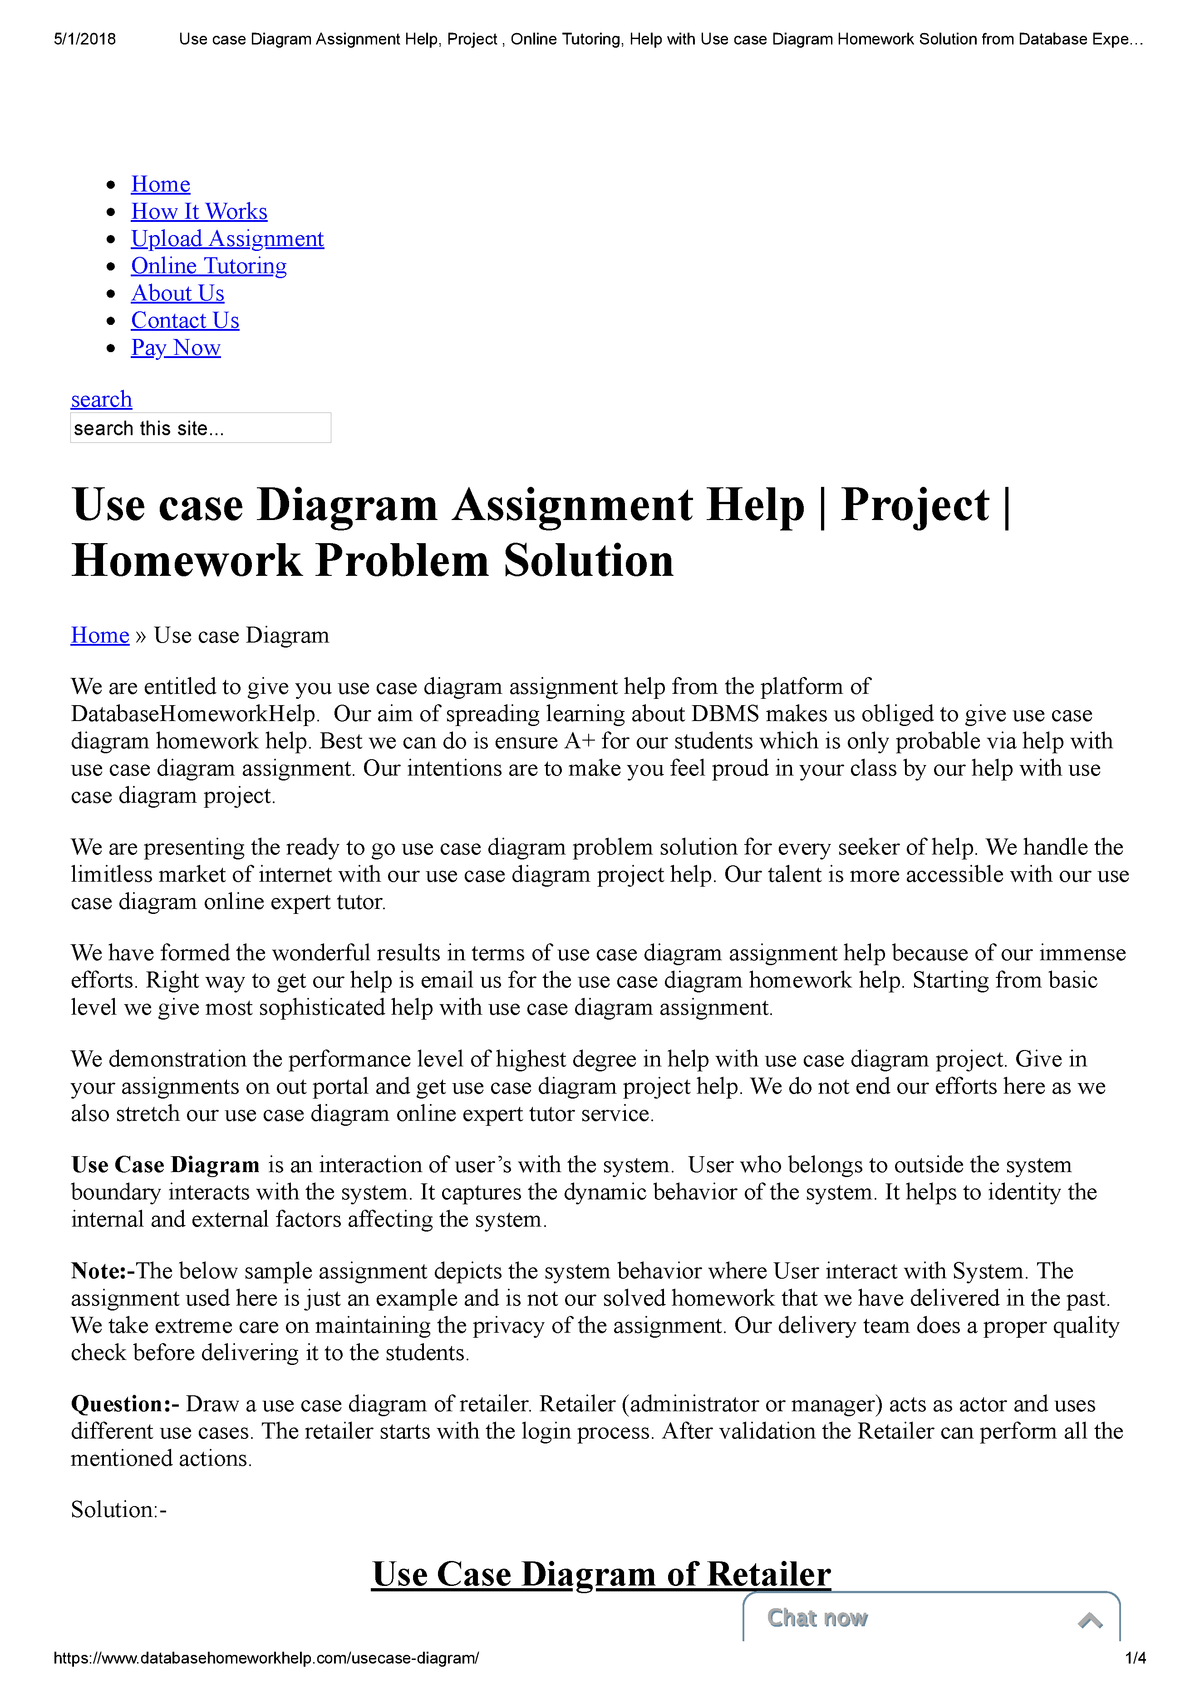 Use Case Diagram Assignment Help Project Online Tutoring